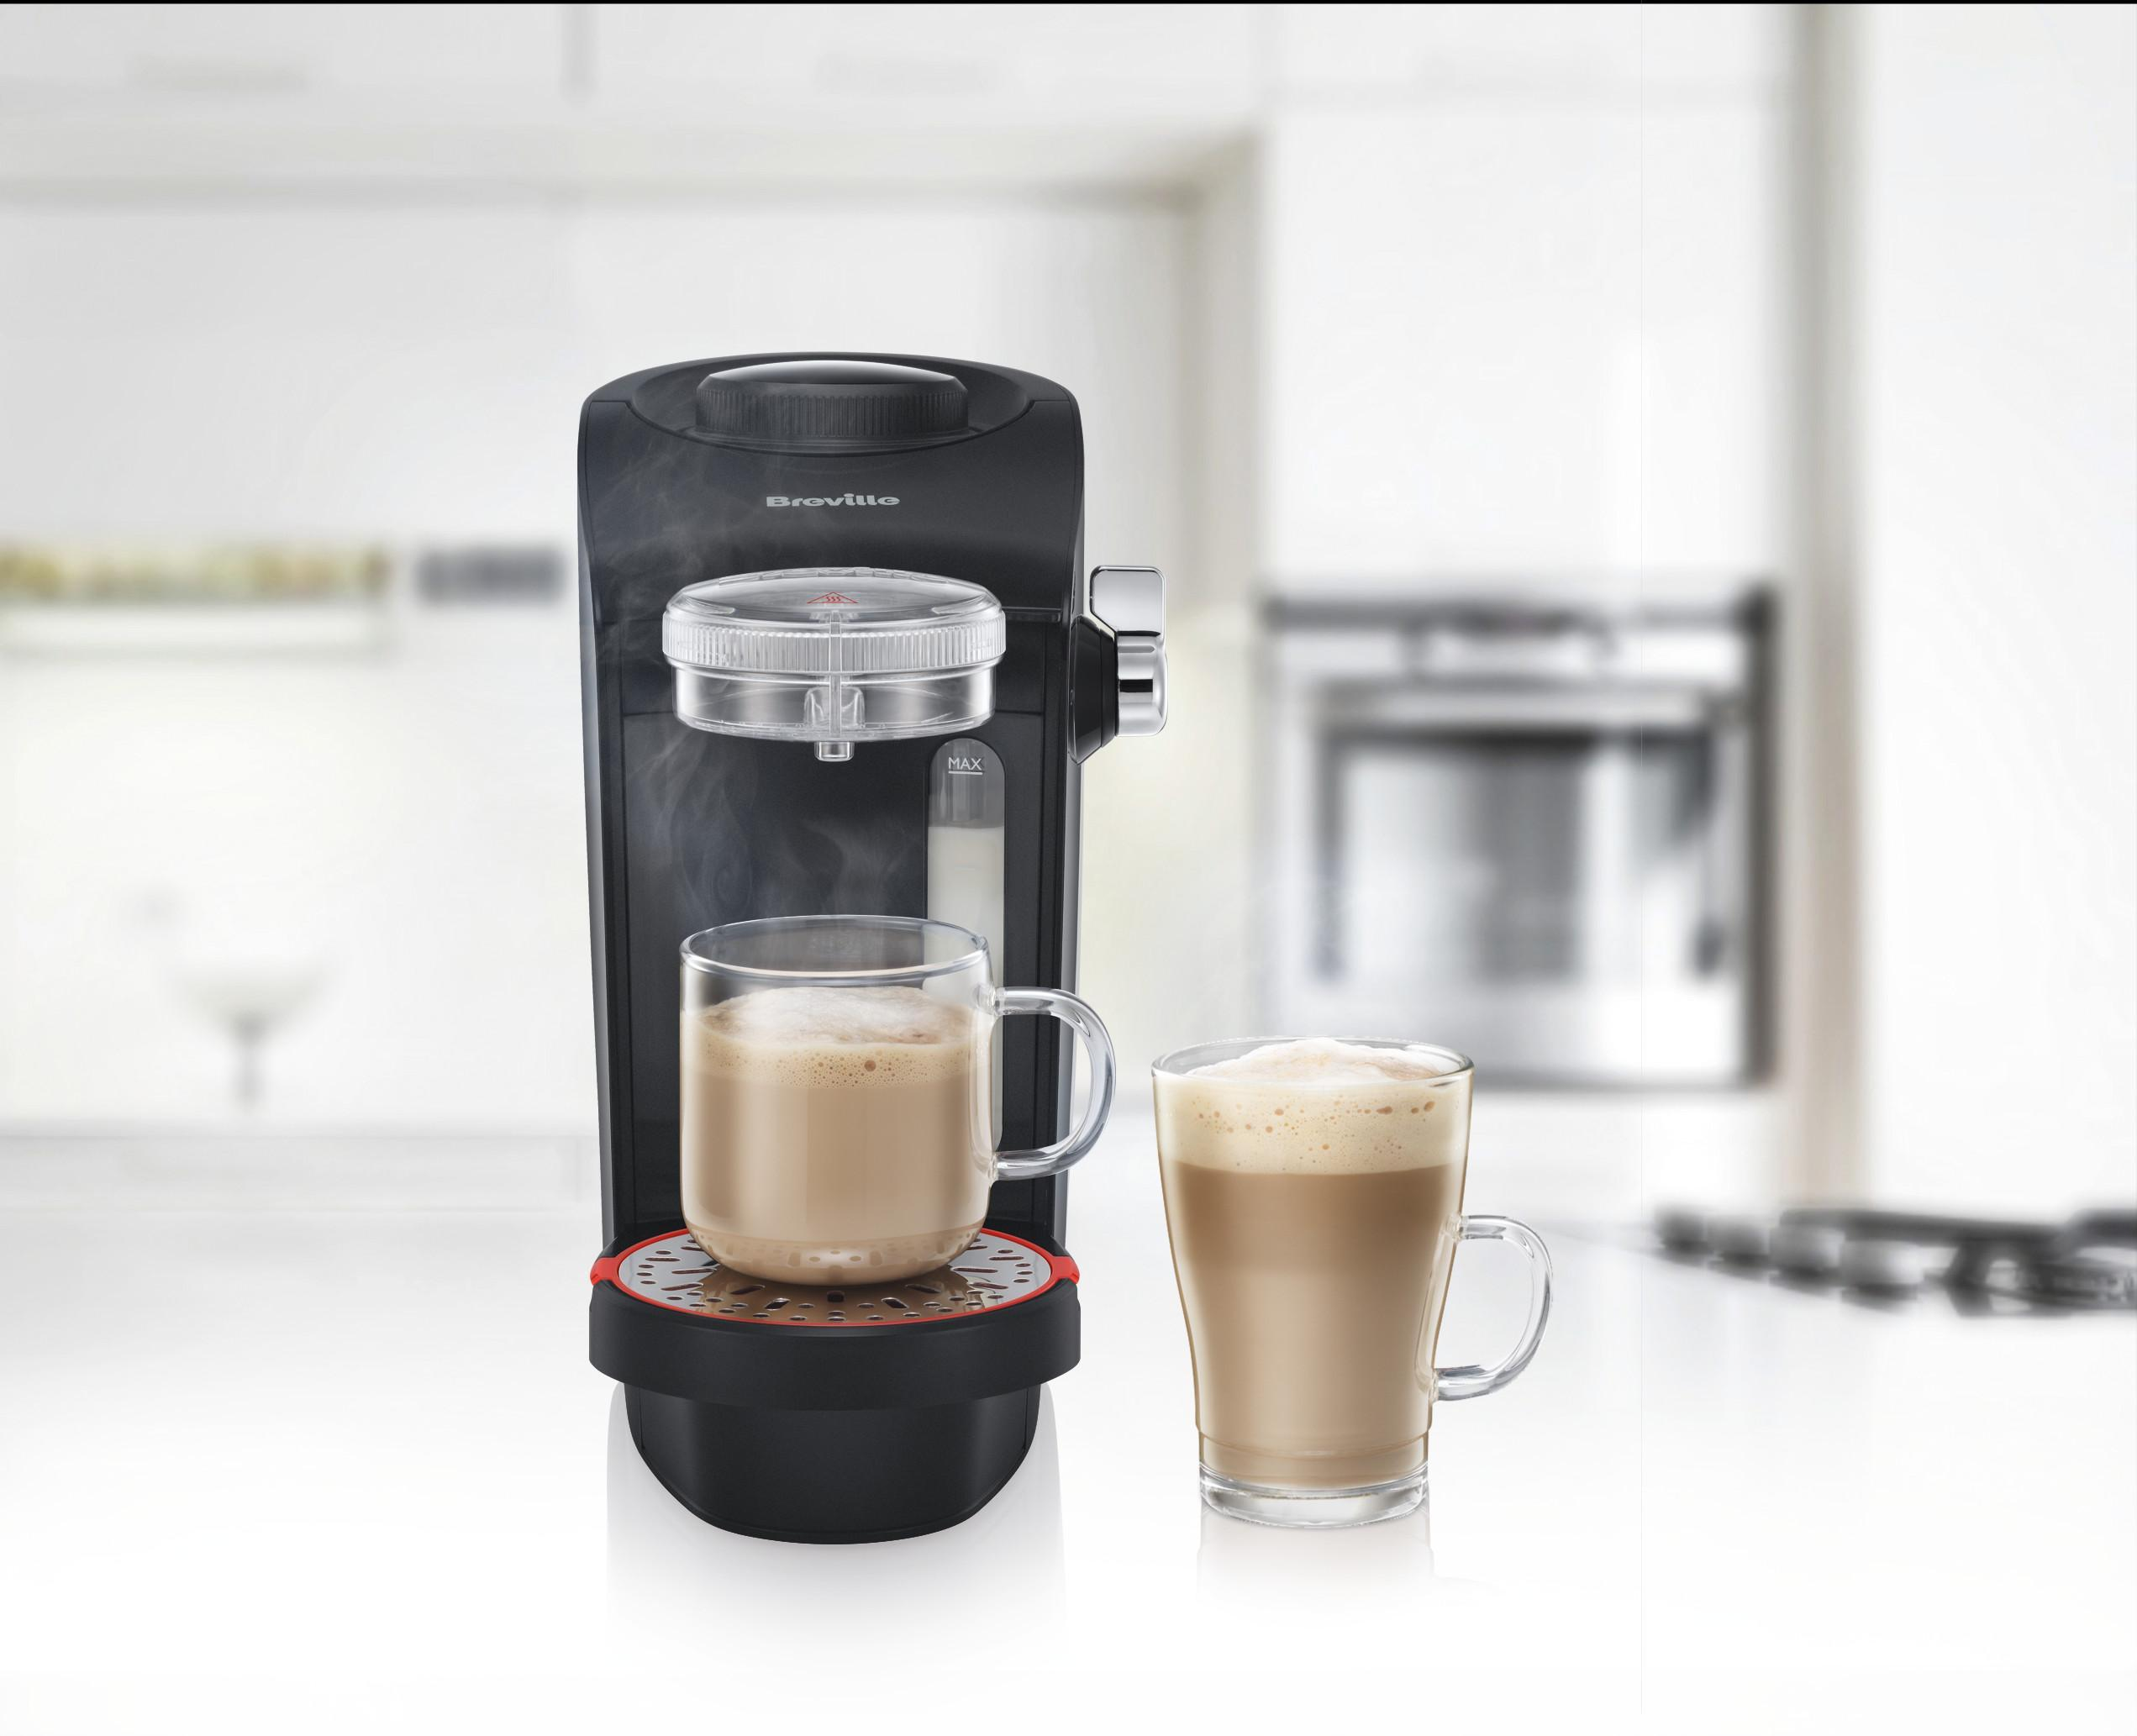 breville coffee machine cleaning guide